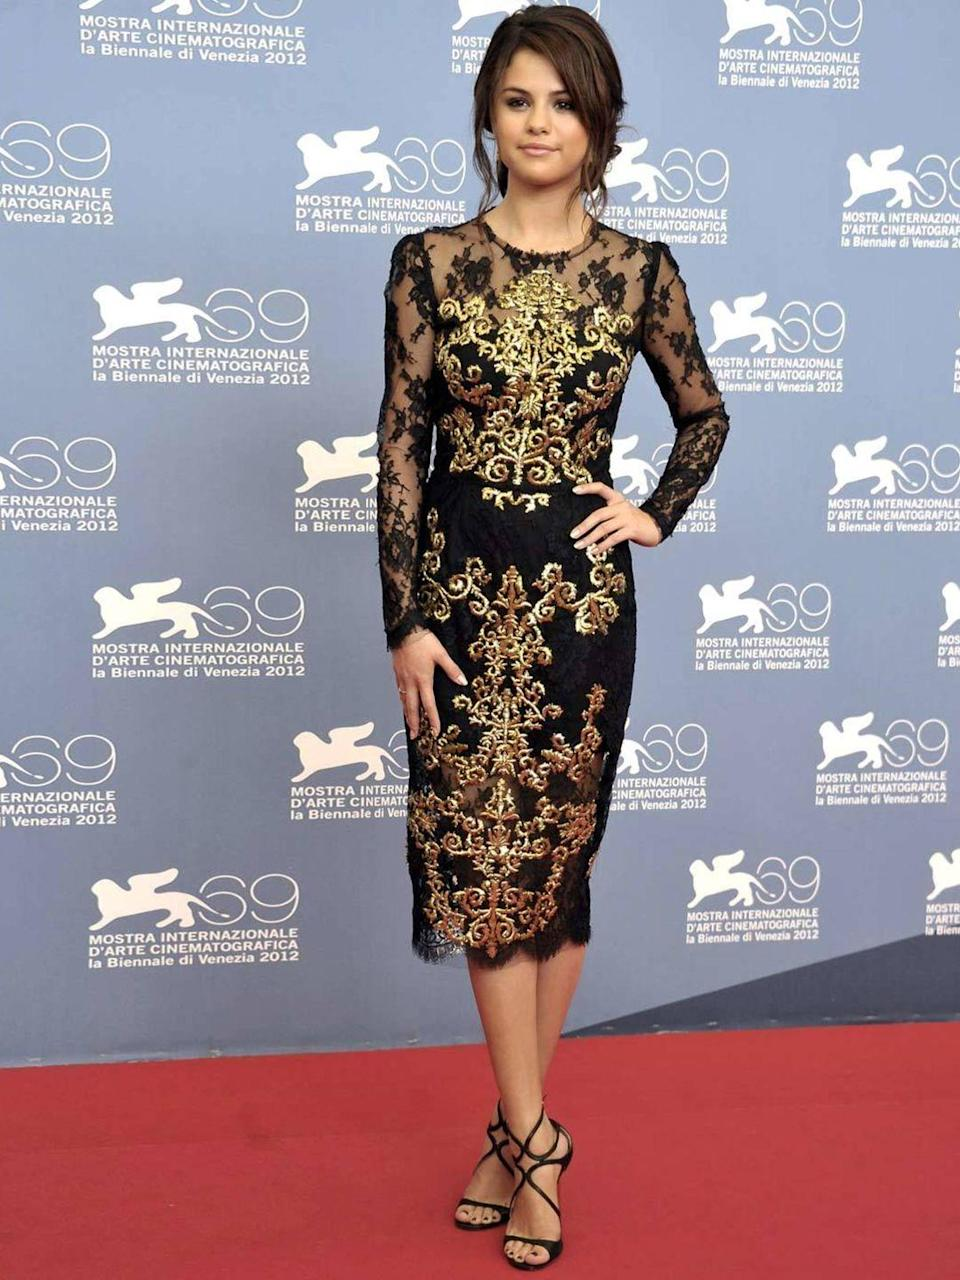 <p>Selena Gomez arrives for the Spring Breakers photocall wearing an ornate gold and black dress by Dolce & Gabbana, September 2012.</p>